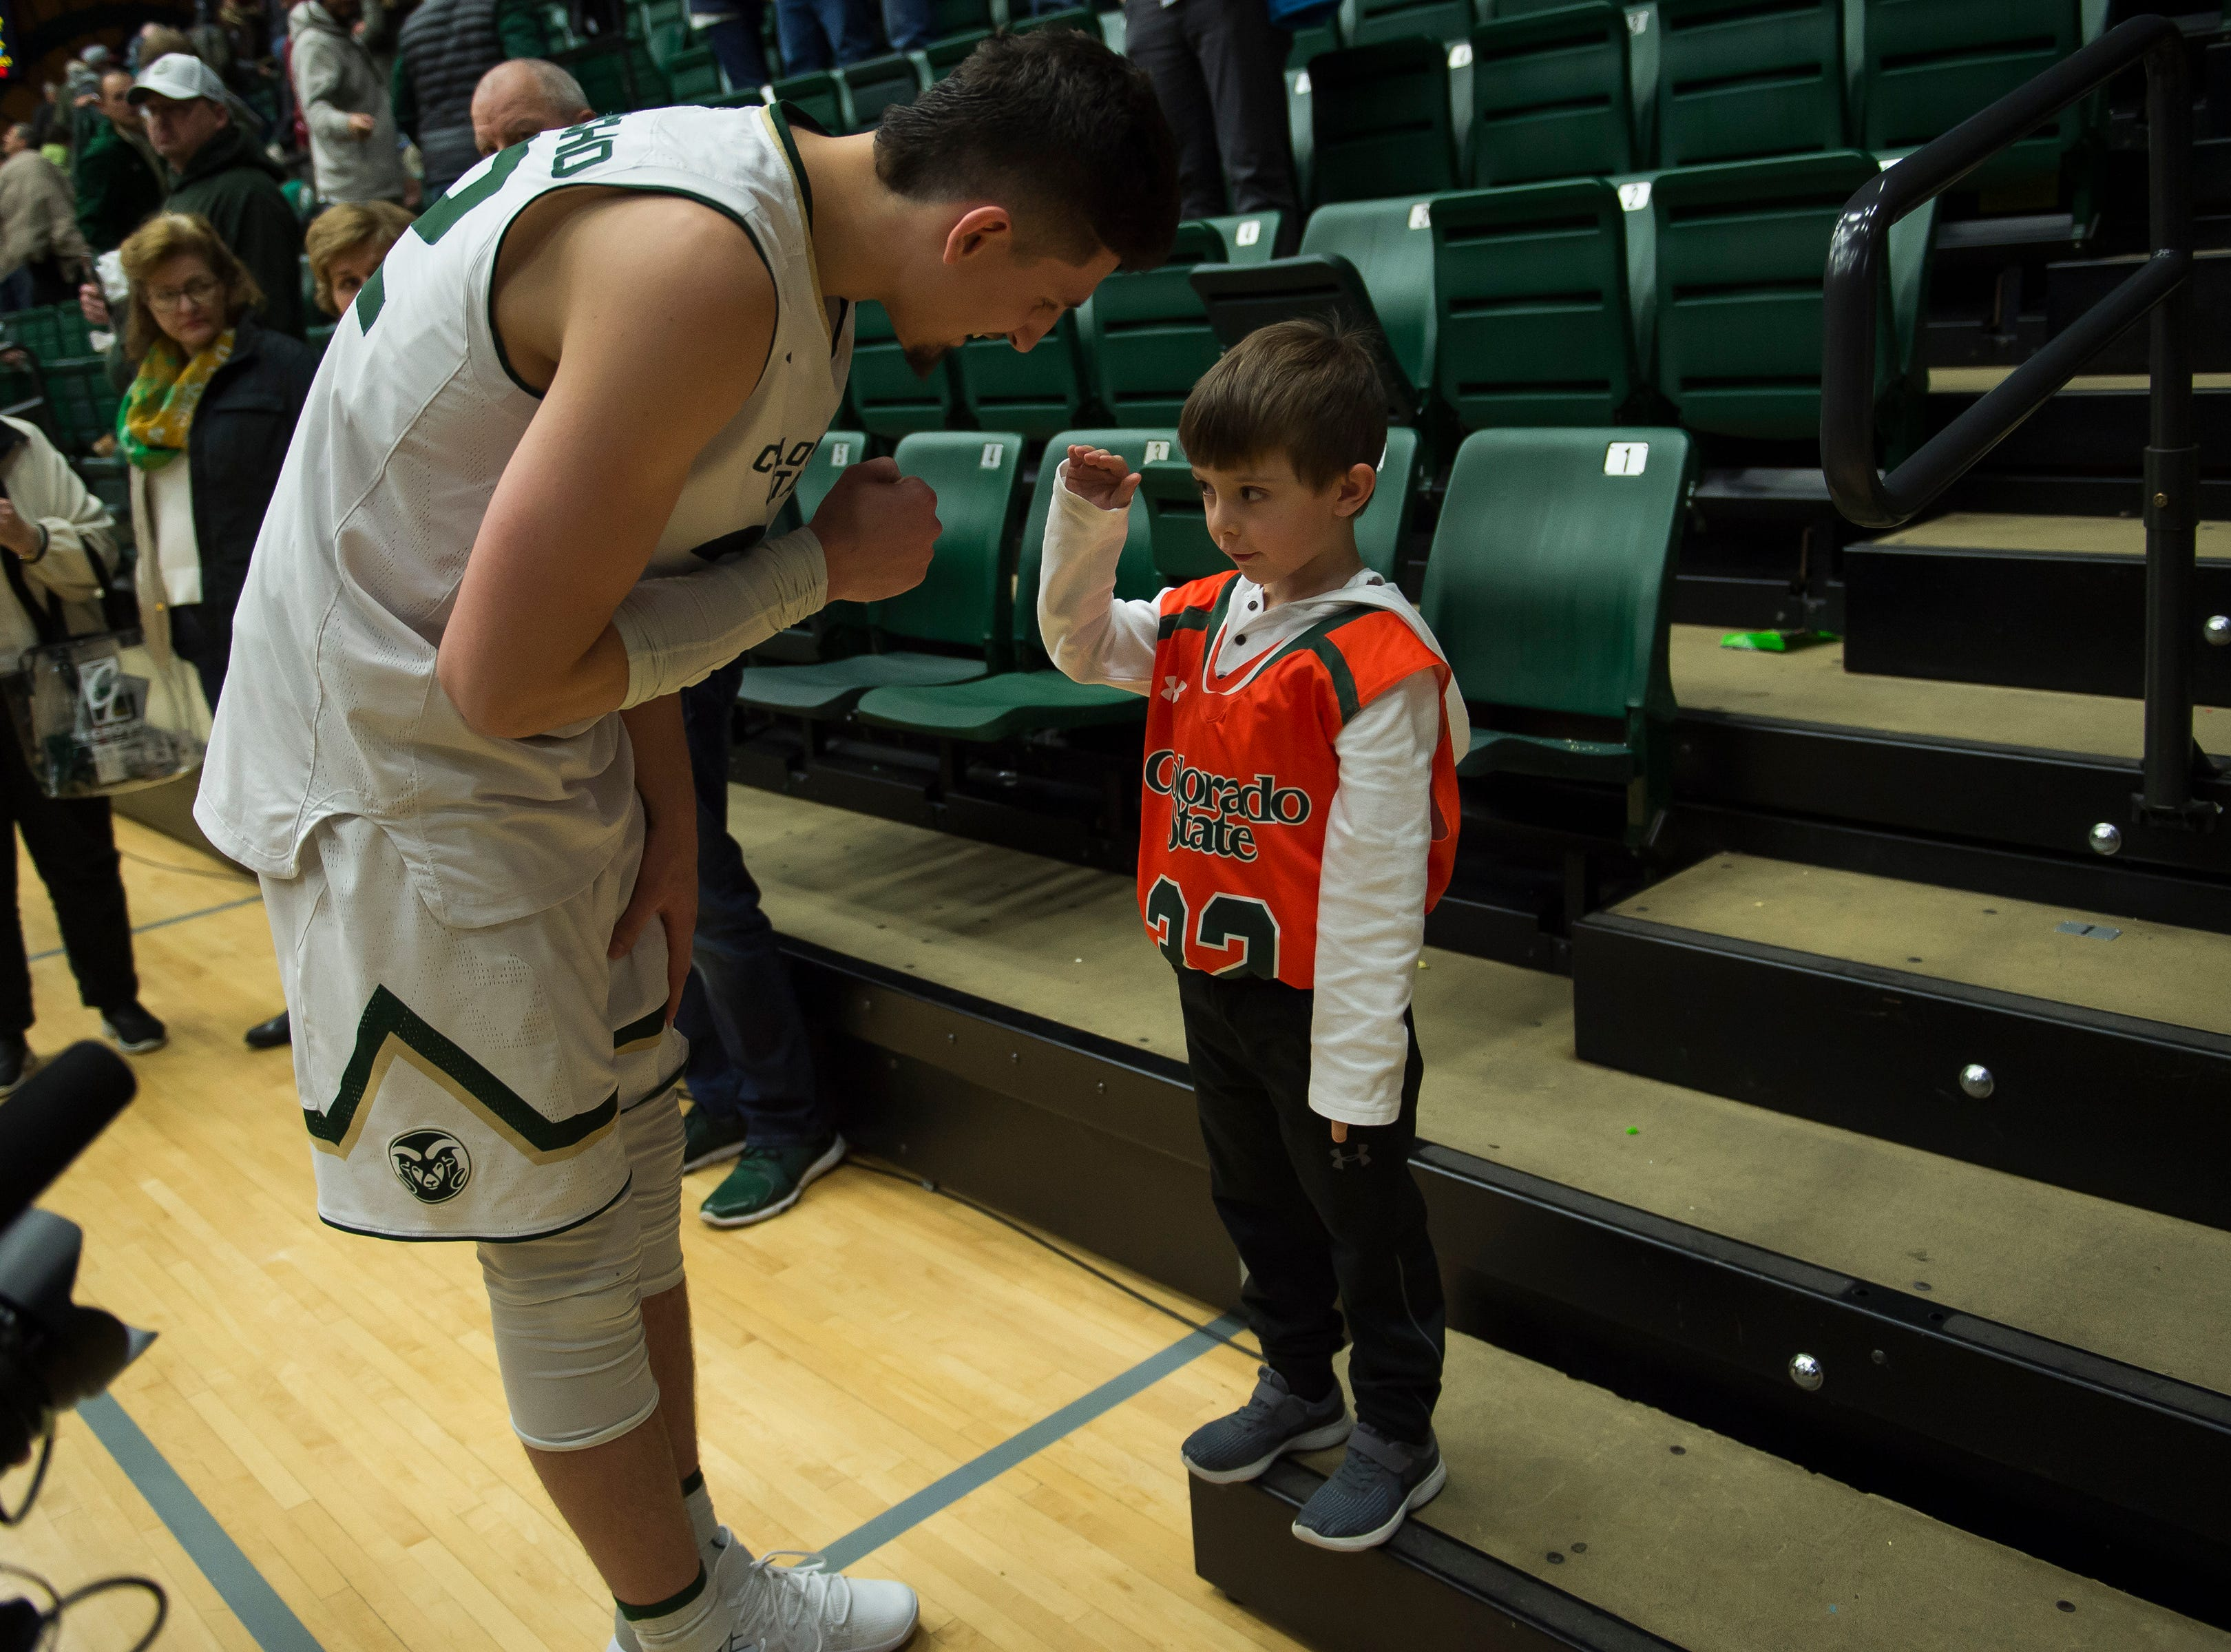 Colorado State University junior center Nico Carvacho (32) greets a young fan after a game against Arkansas on Wednesday, Dec. 5, 2018, Moby Arena in Fort Collins, Colo.